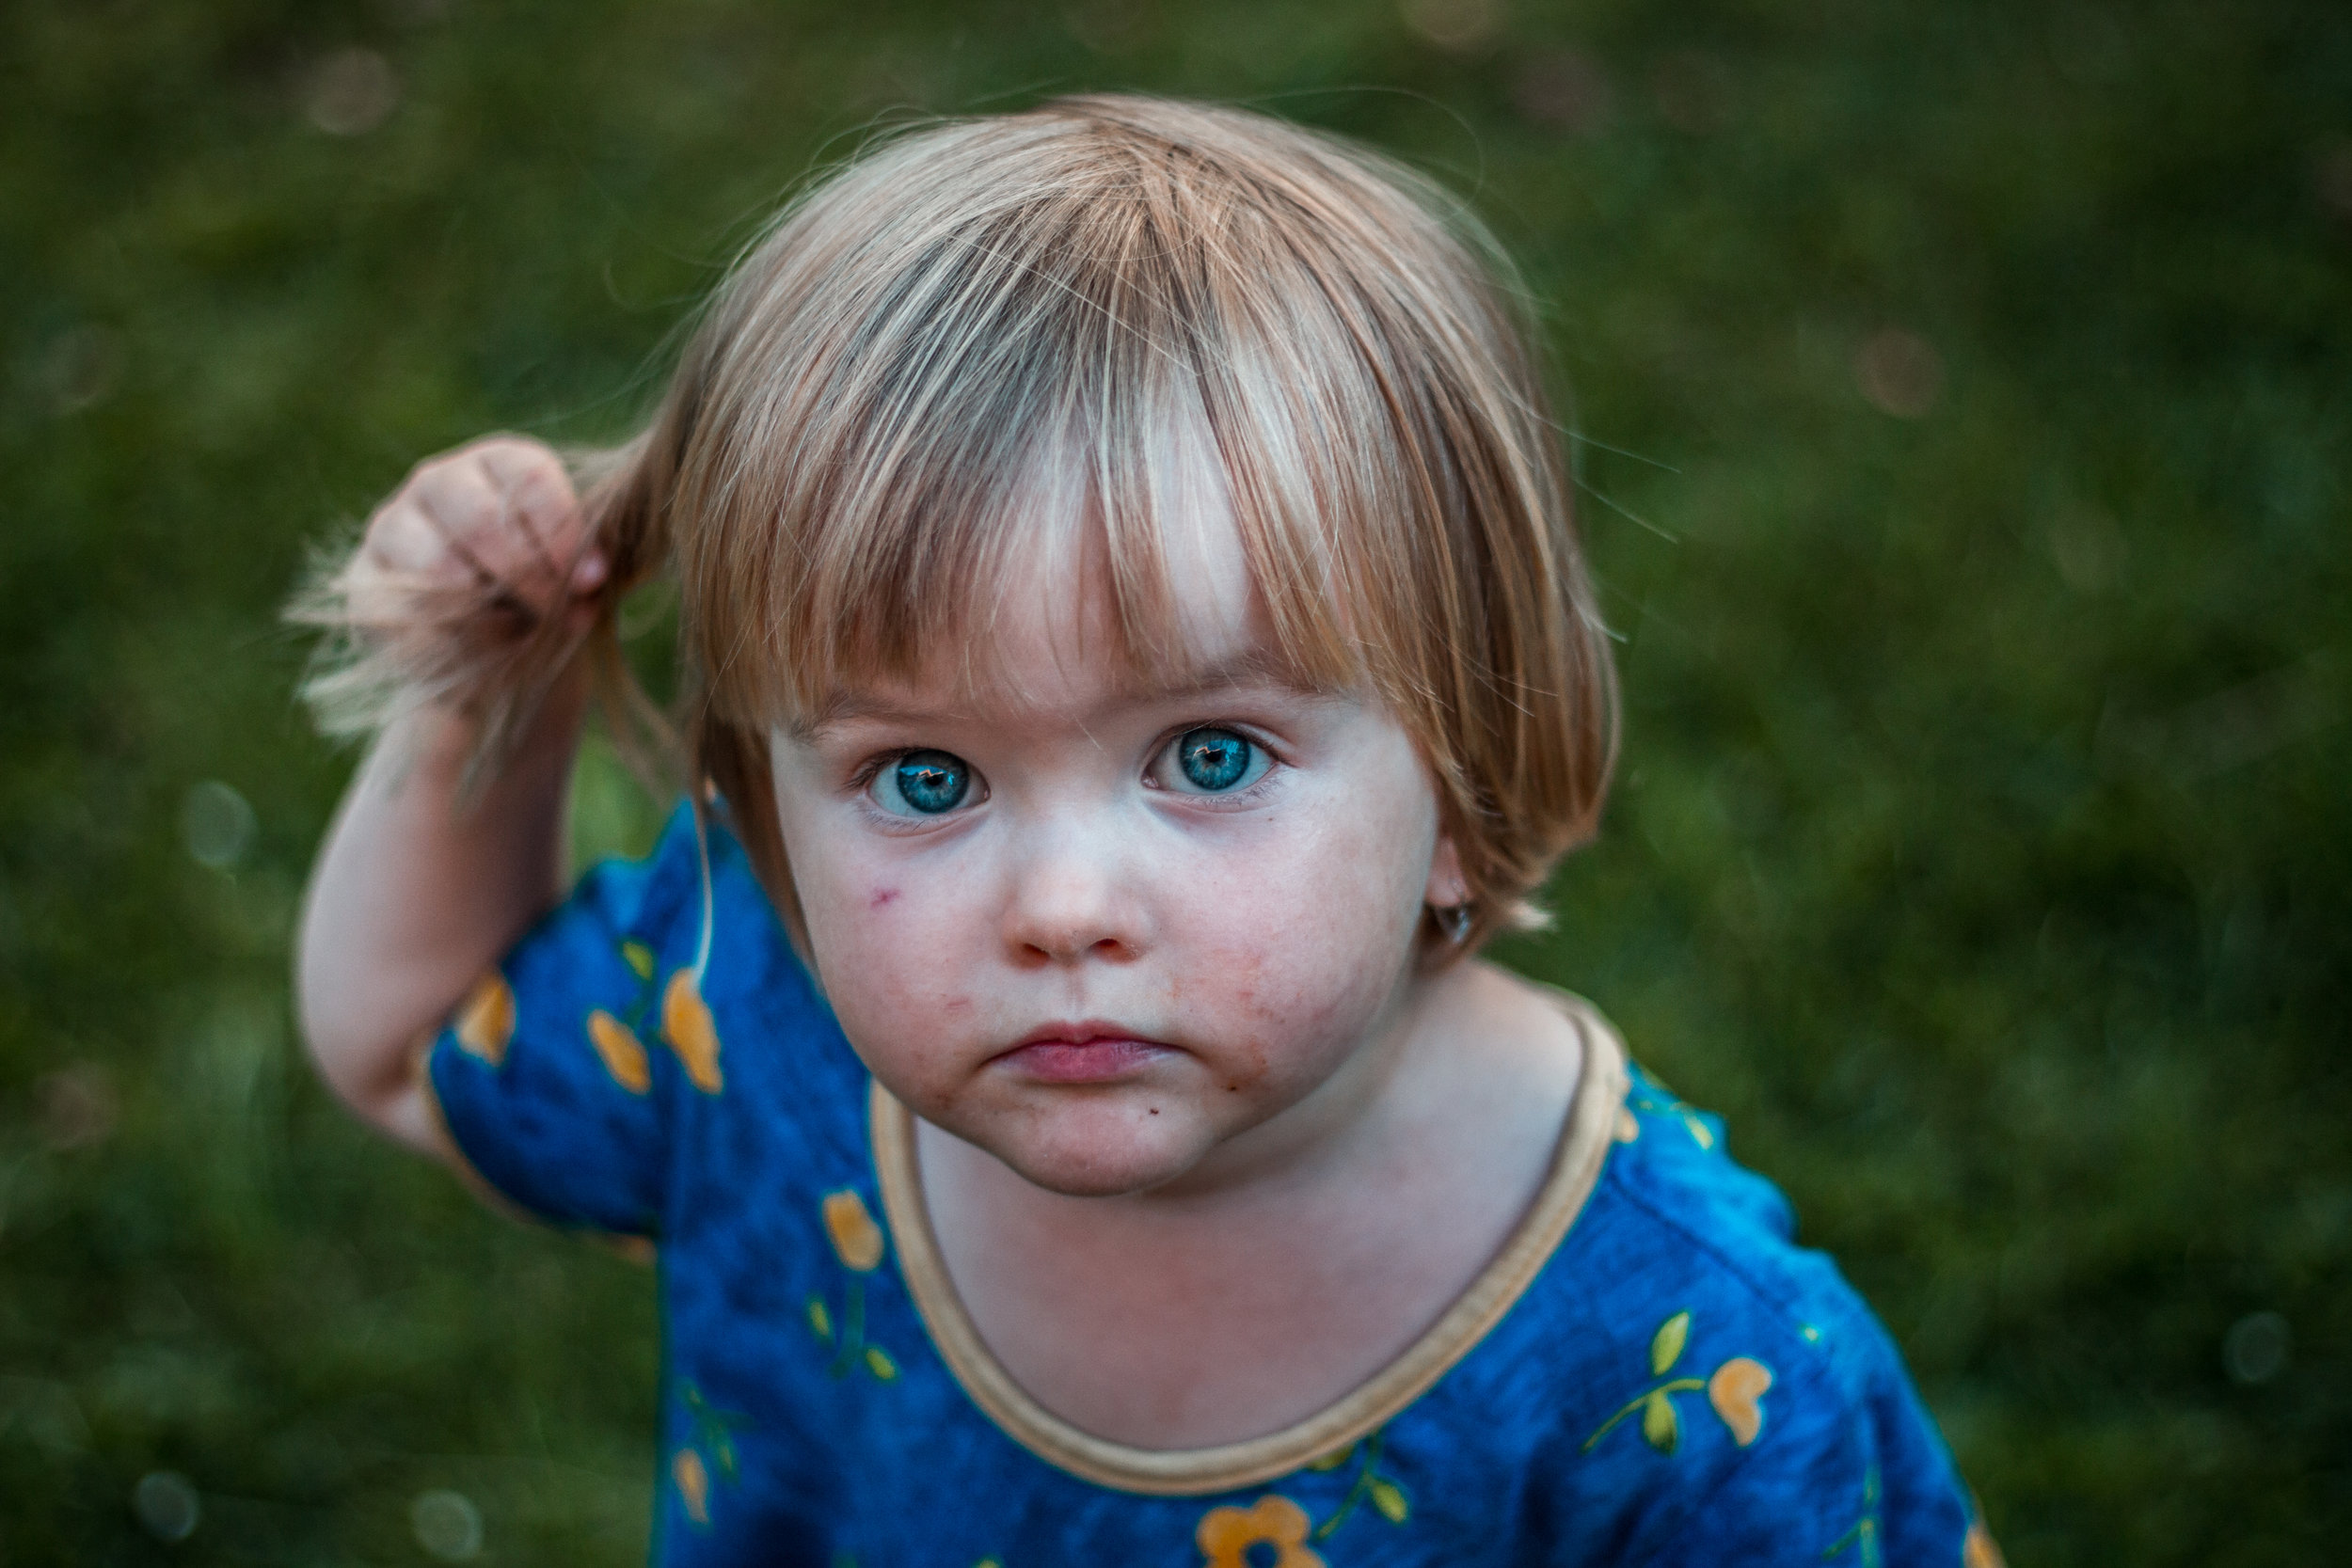 toddlers and biting. there is a wealth of information on this subject, we deal with any rare incidents on a very individual basis. -